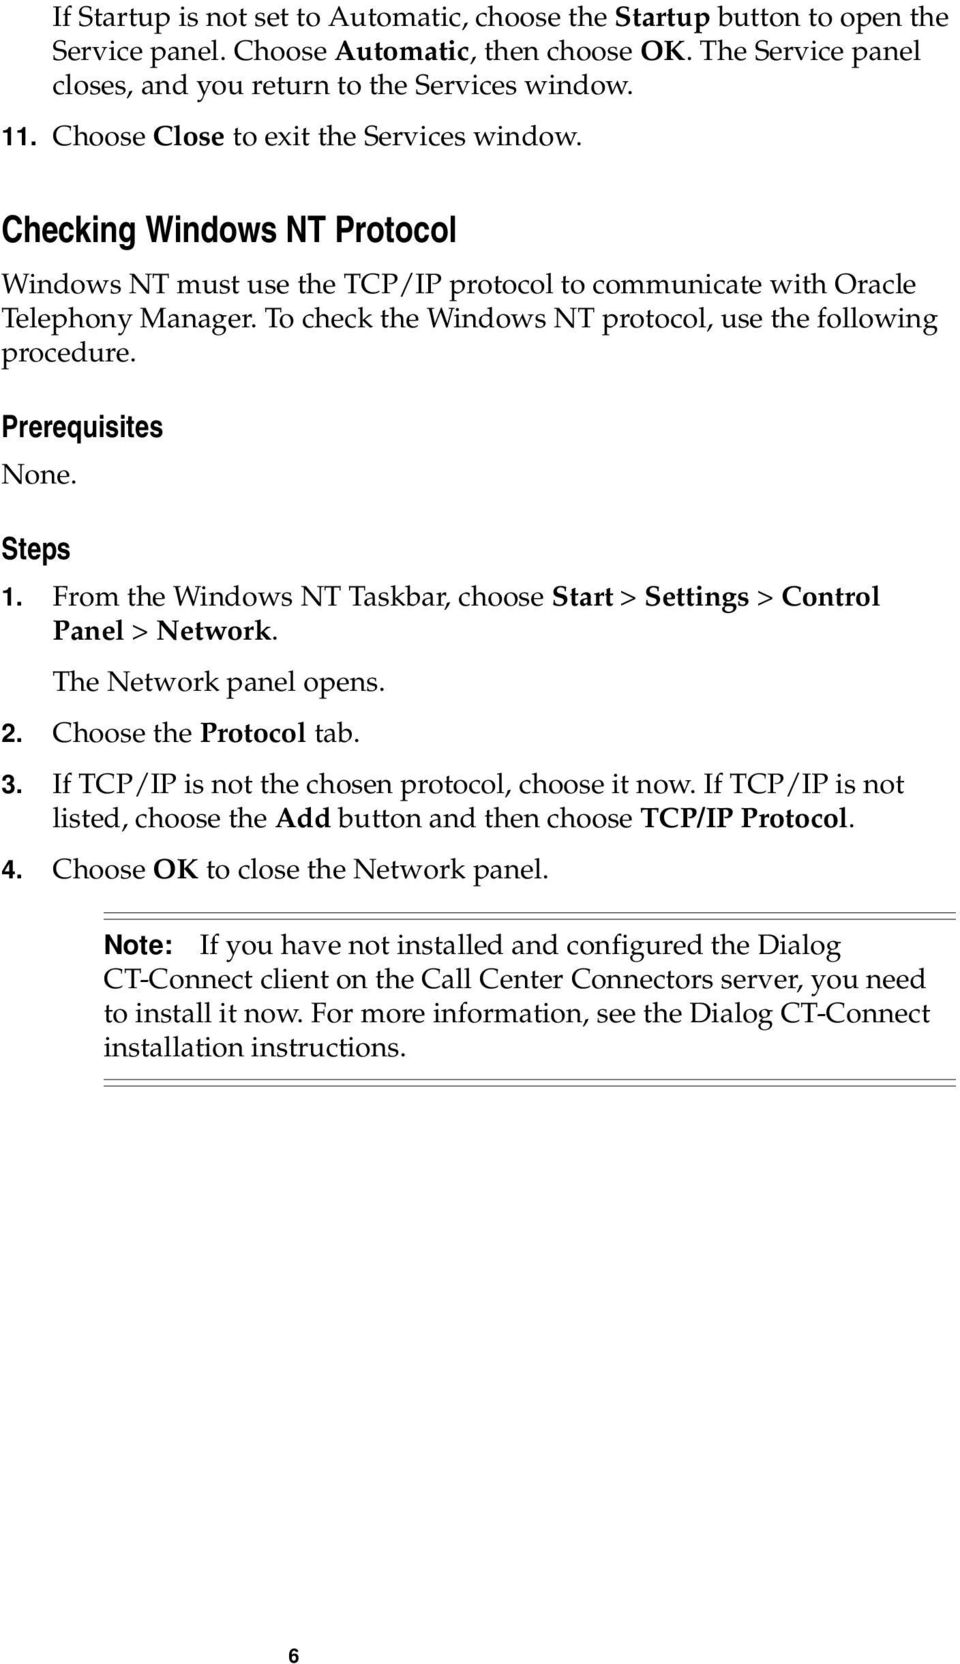 To check the Windows NT protocol, use the following procedure. Prerequisites None. Steps 1. From the Windows NT Taskbar, choose Start > Settings > Control Panel > Network. The Network panel opens. 2.